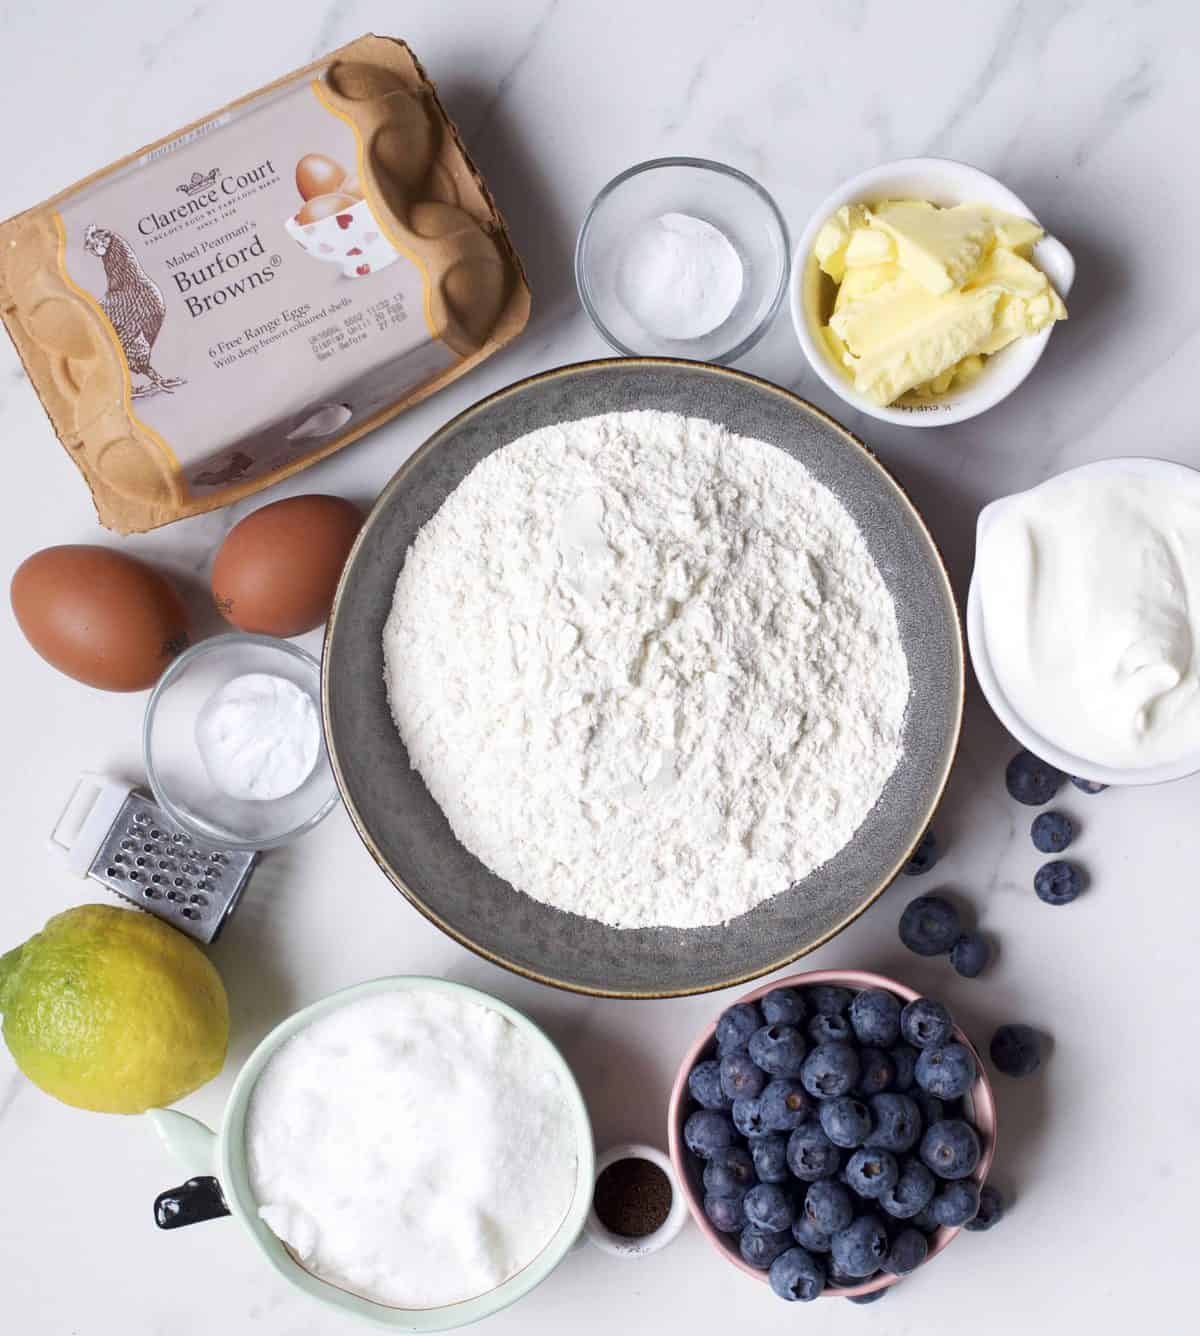 Ingredients for Blueberry Loaf